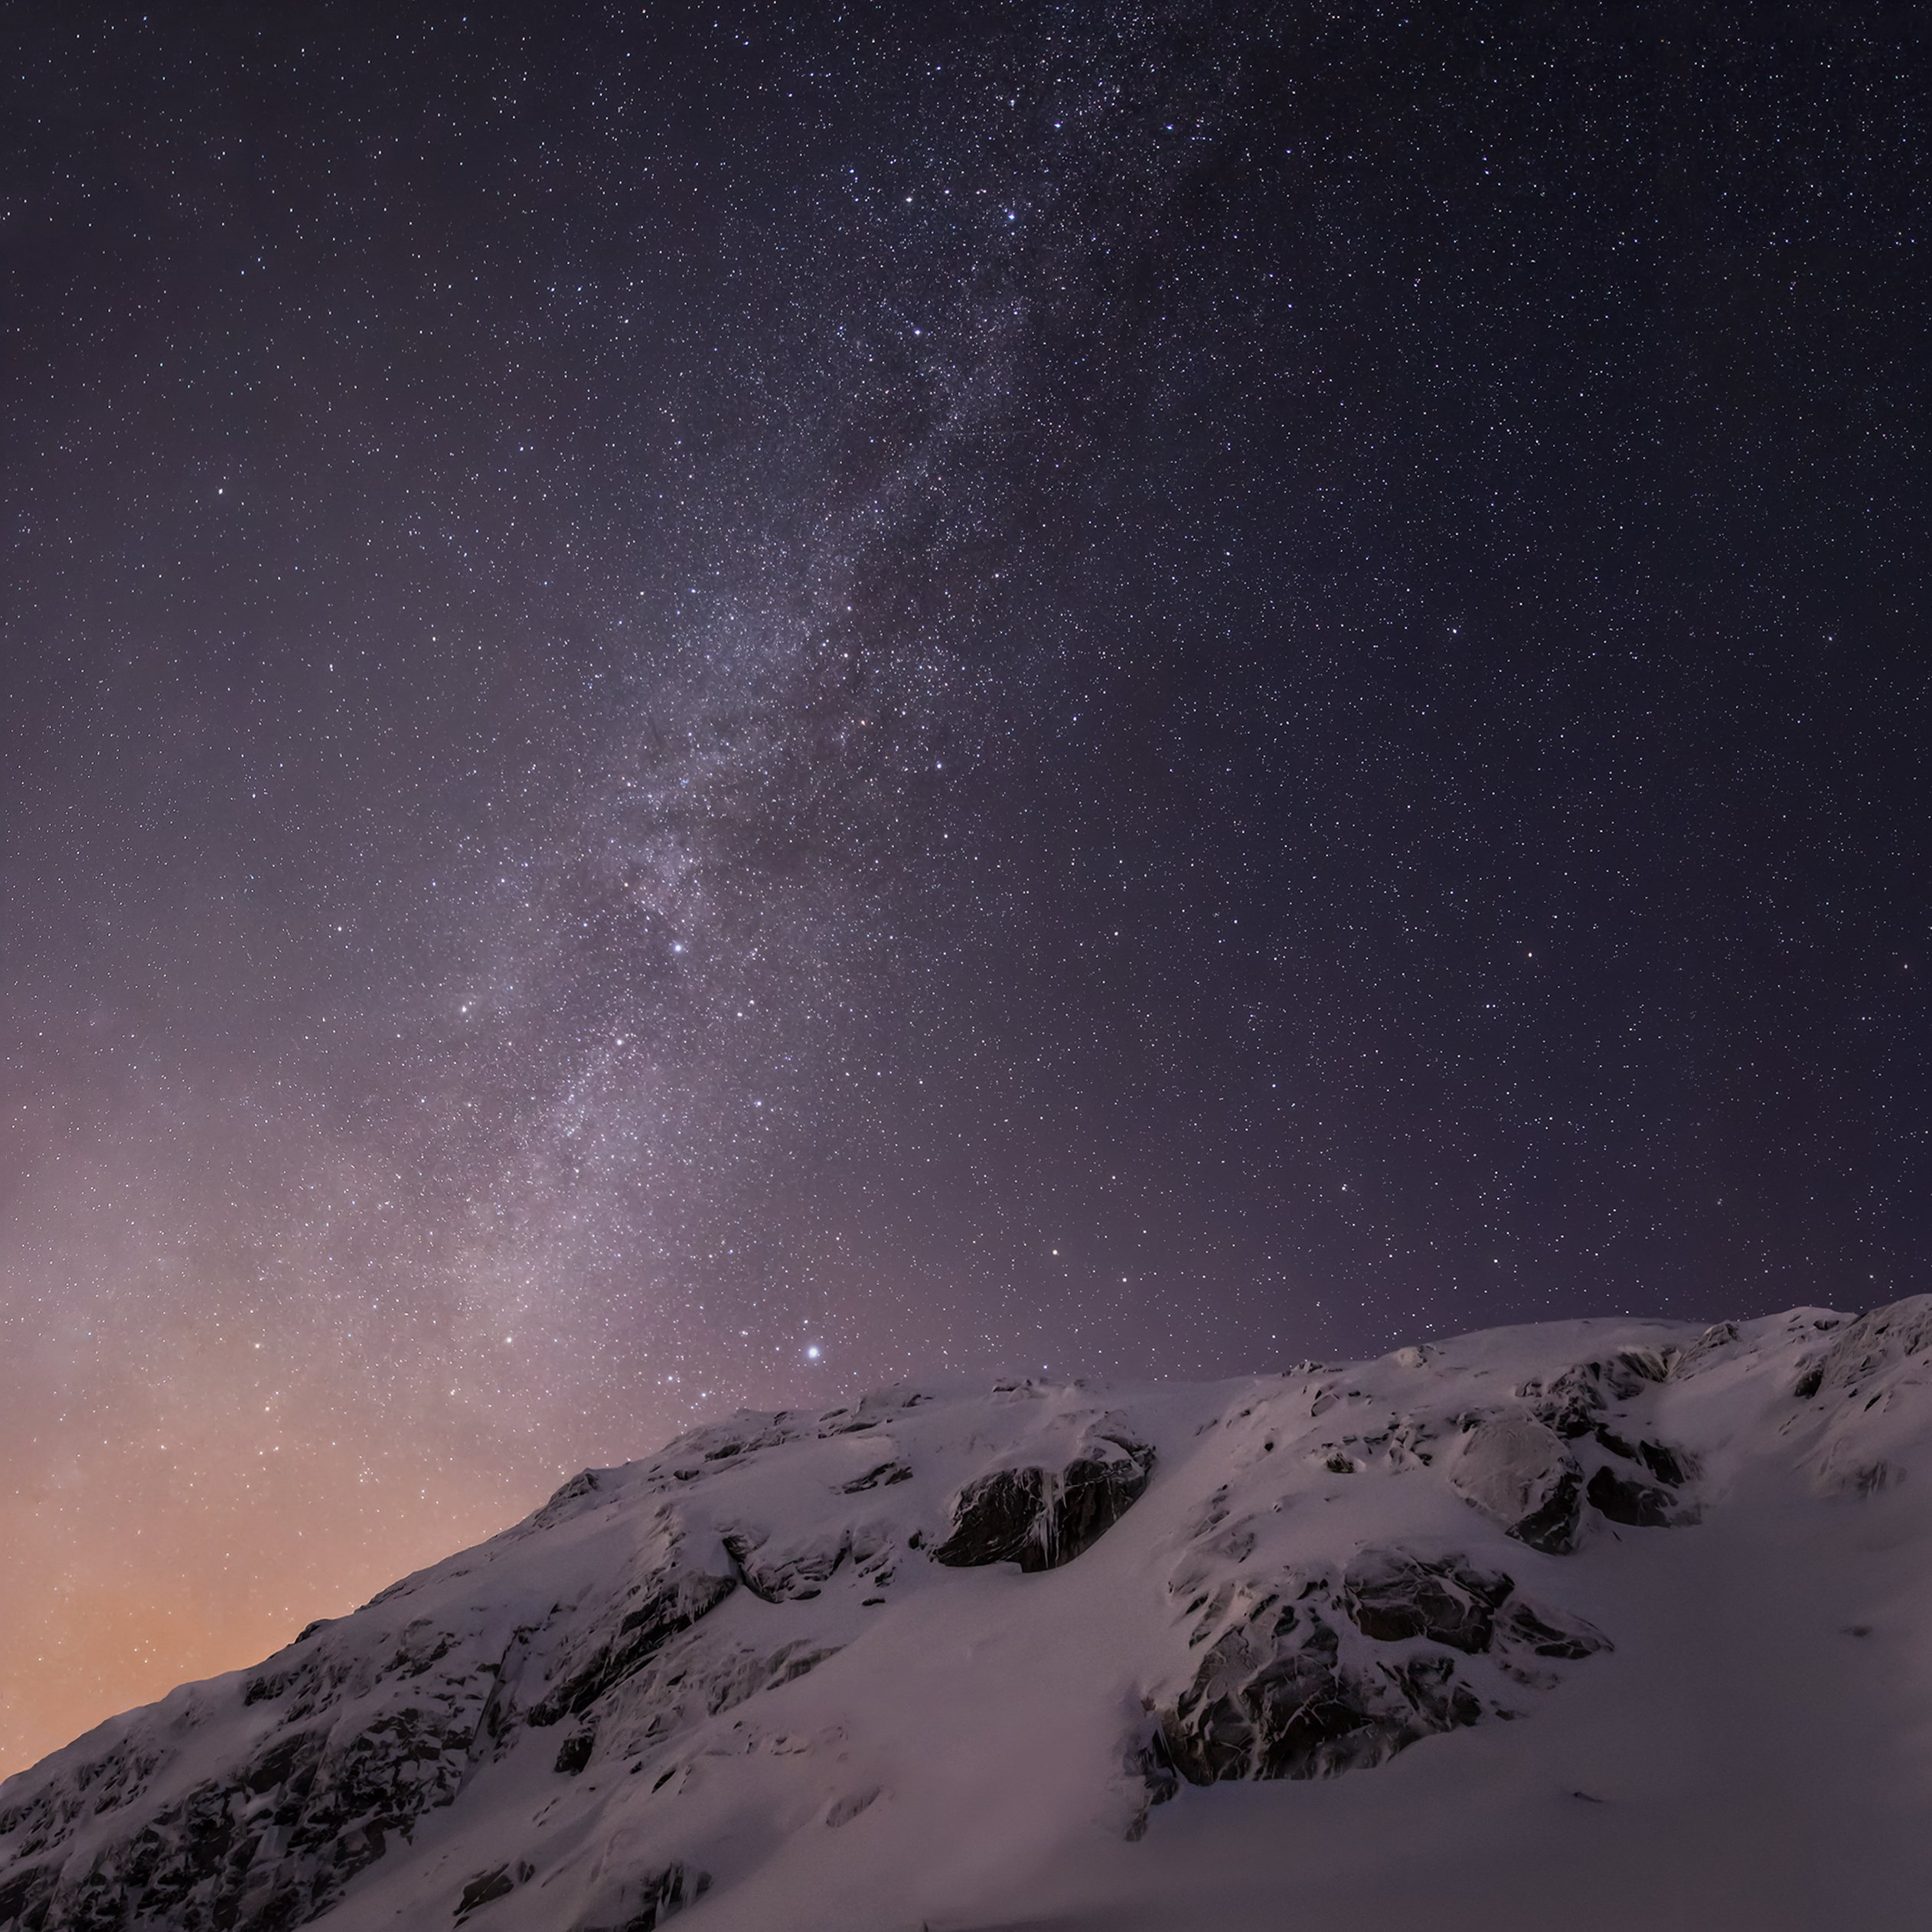 Download the new iOS 8 wallpapers 2524x2524